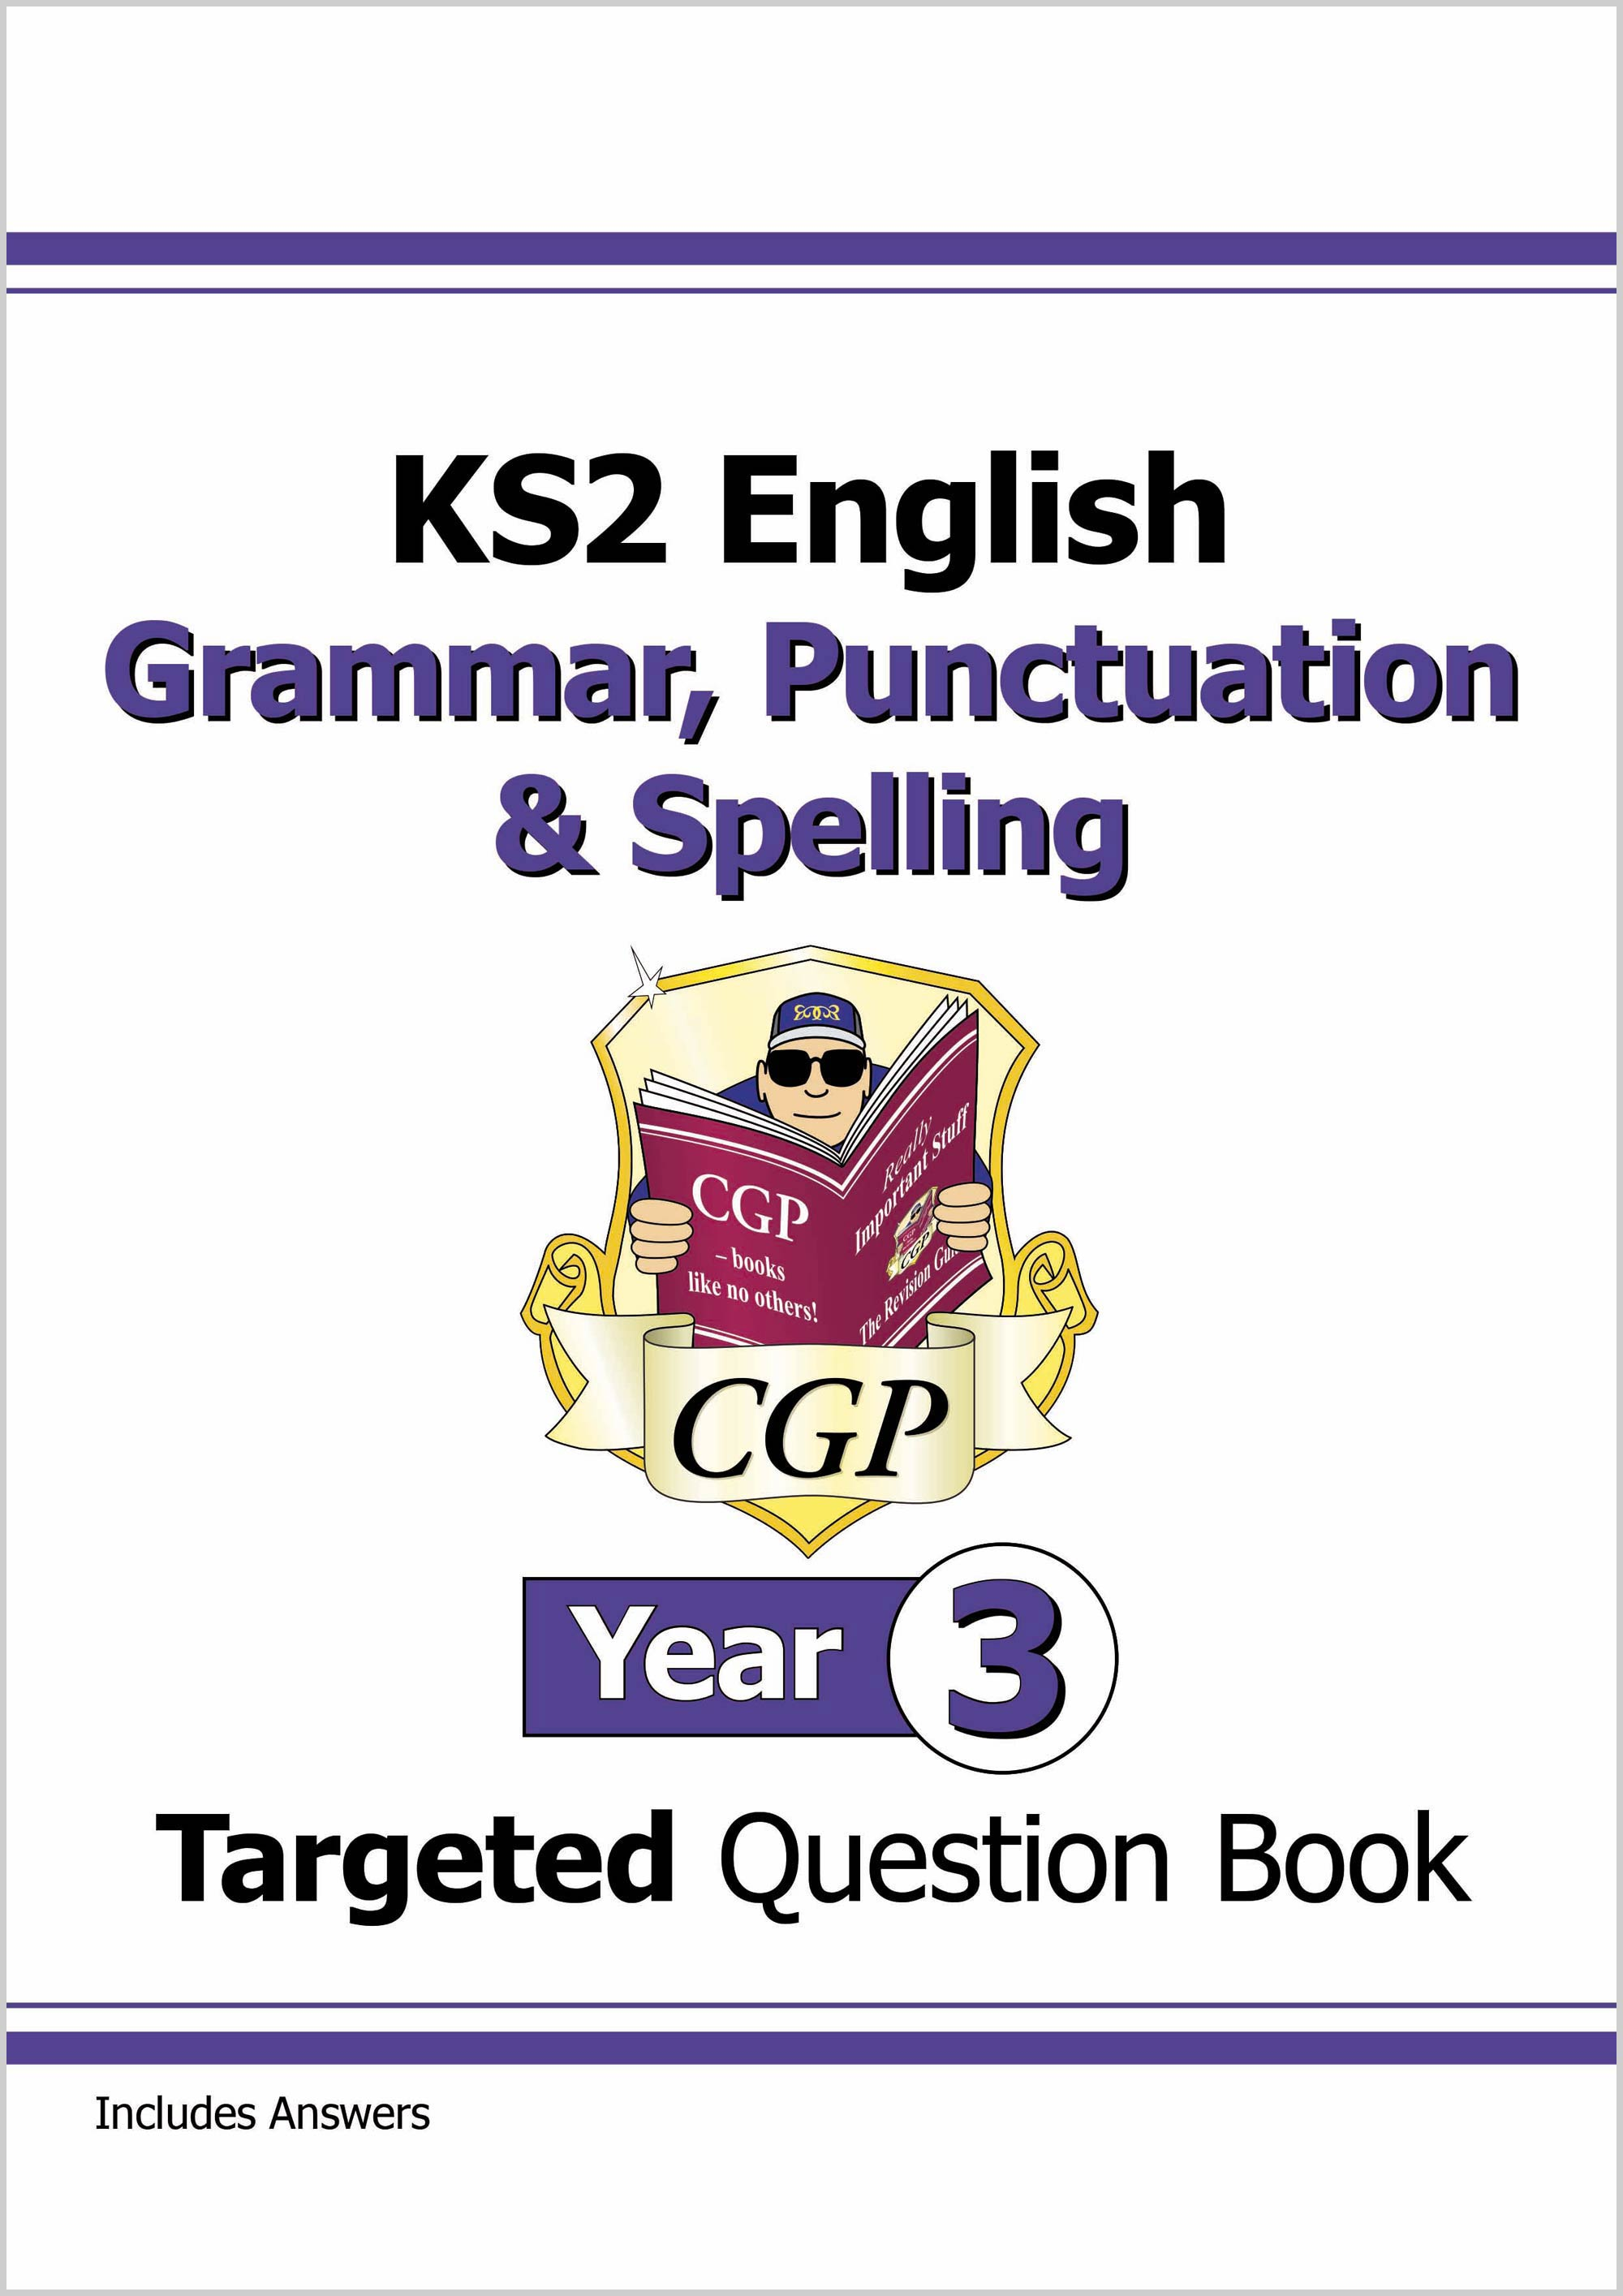 E3W22D - KS2 English Targeted Question Book: Grammar, Punctuation & Spelling - Year 3 Online Edition